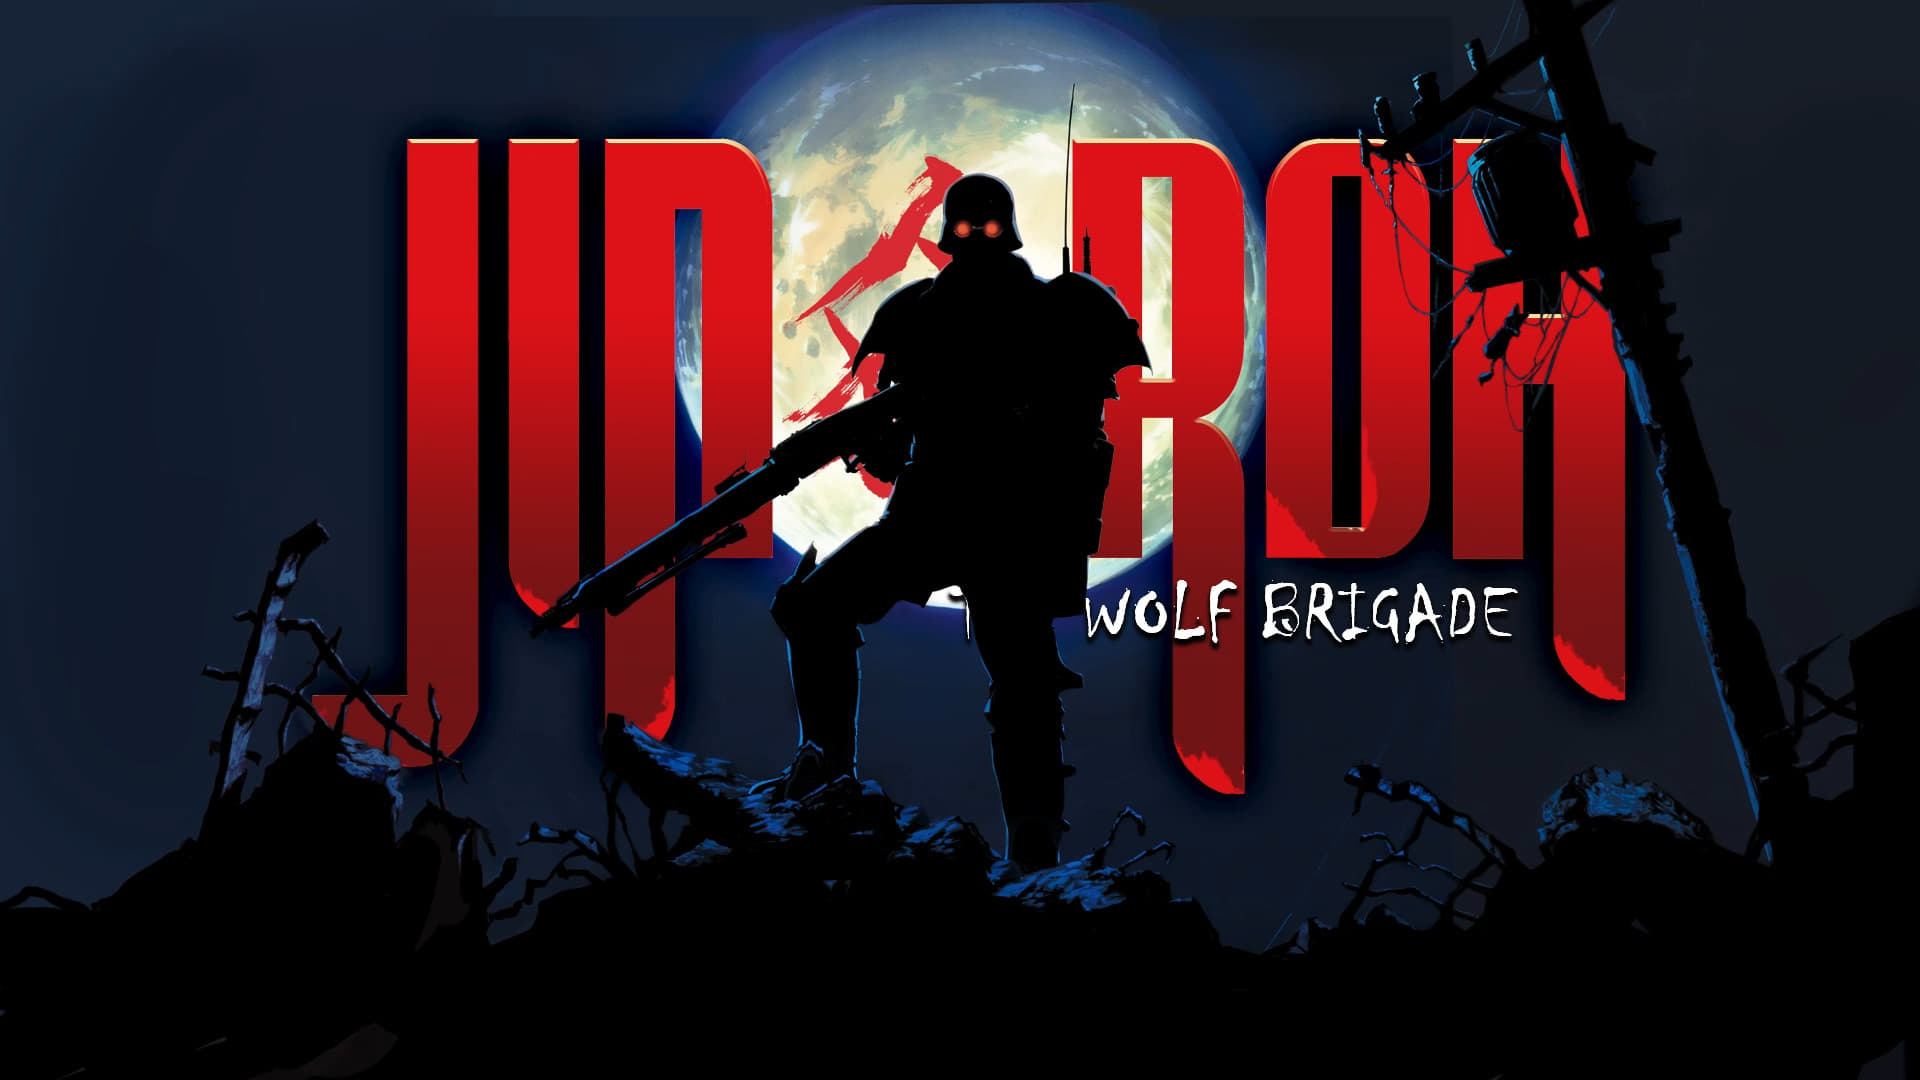 Jin-Roh The Wolf Brigade Wallpapers High Quality | Download Free